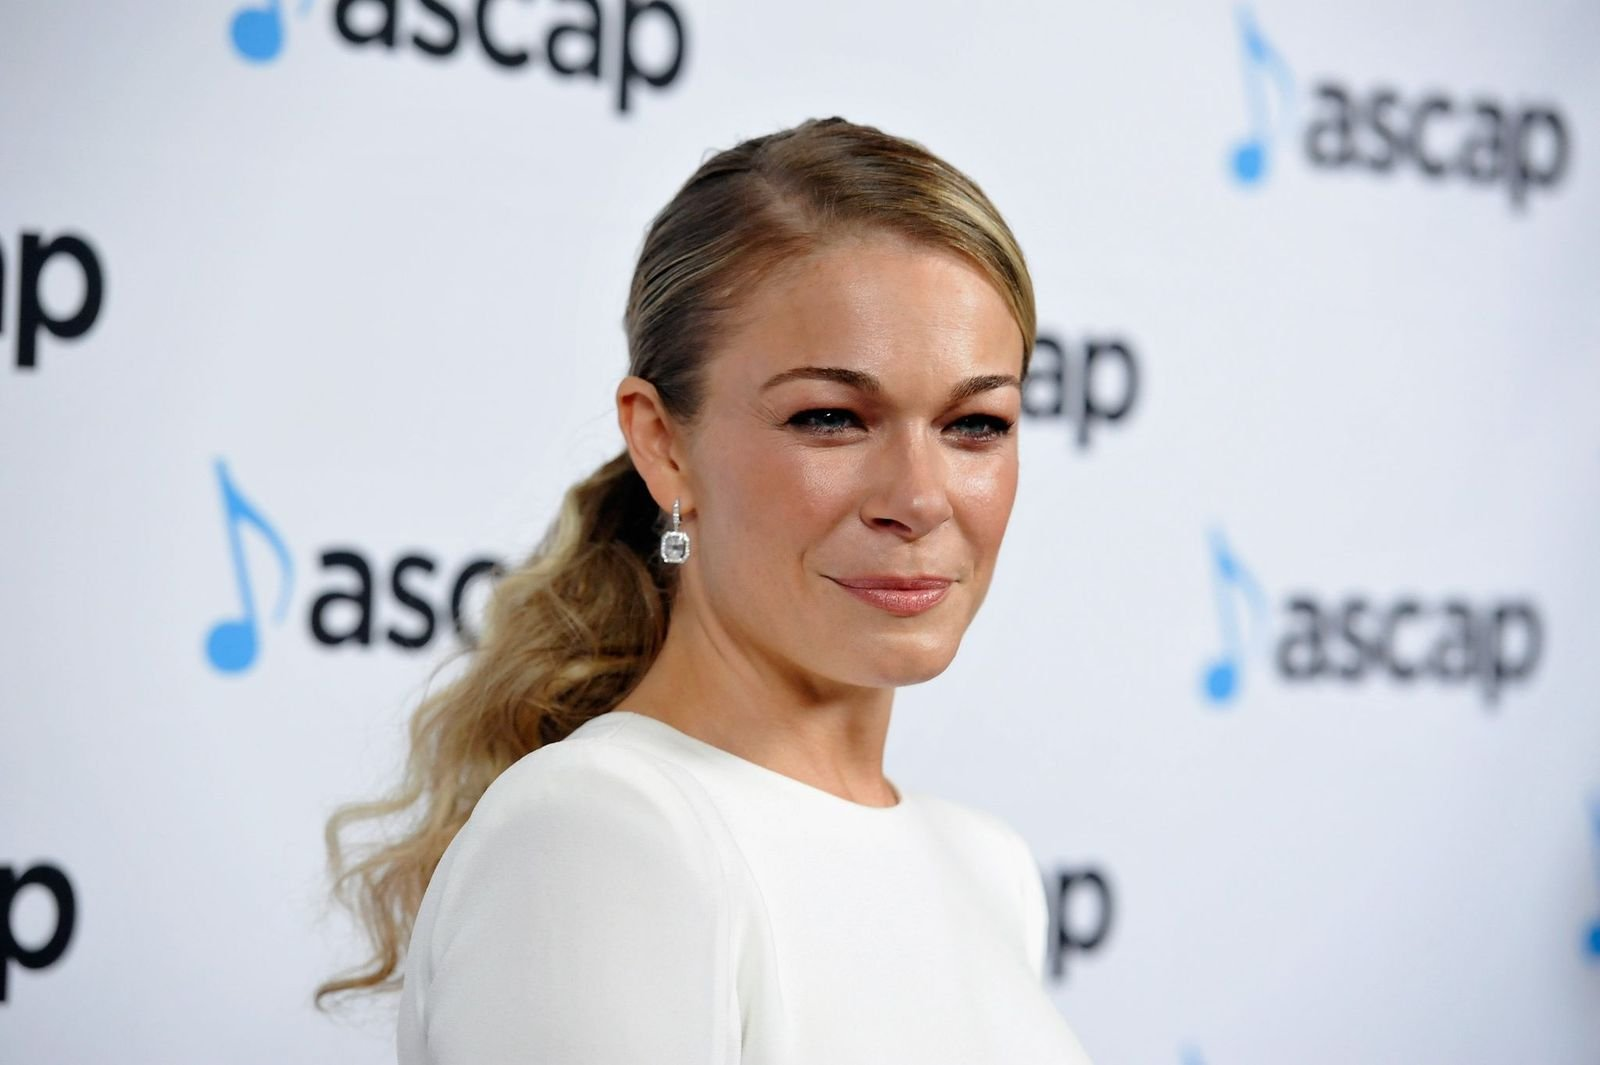 LeAnn Rimes at the 34th Annual ASCAP Pop Music Awards at The Wiltern on May 18, 2017 in Los Angeles, United States | Photo: Getty Images